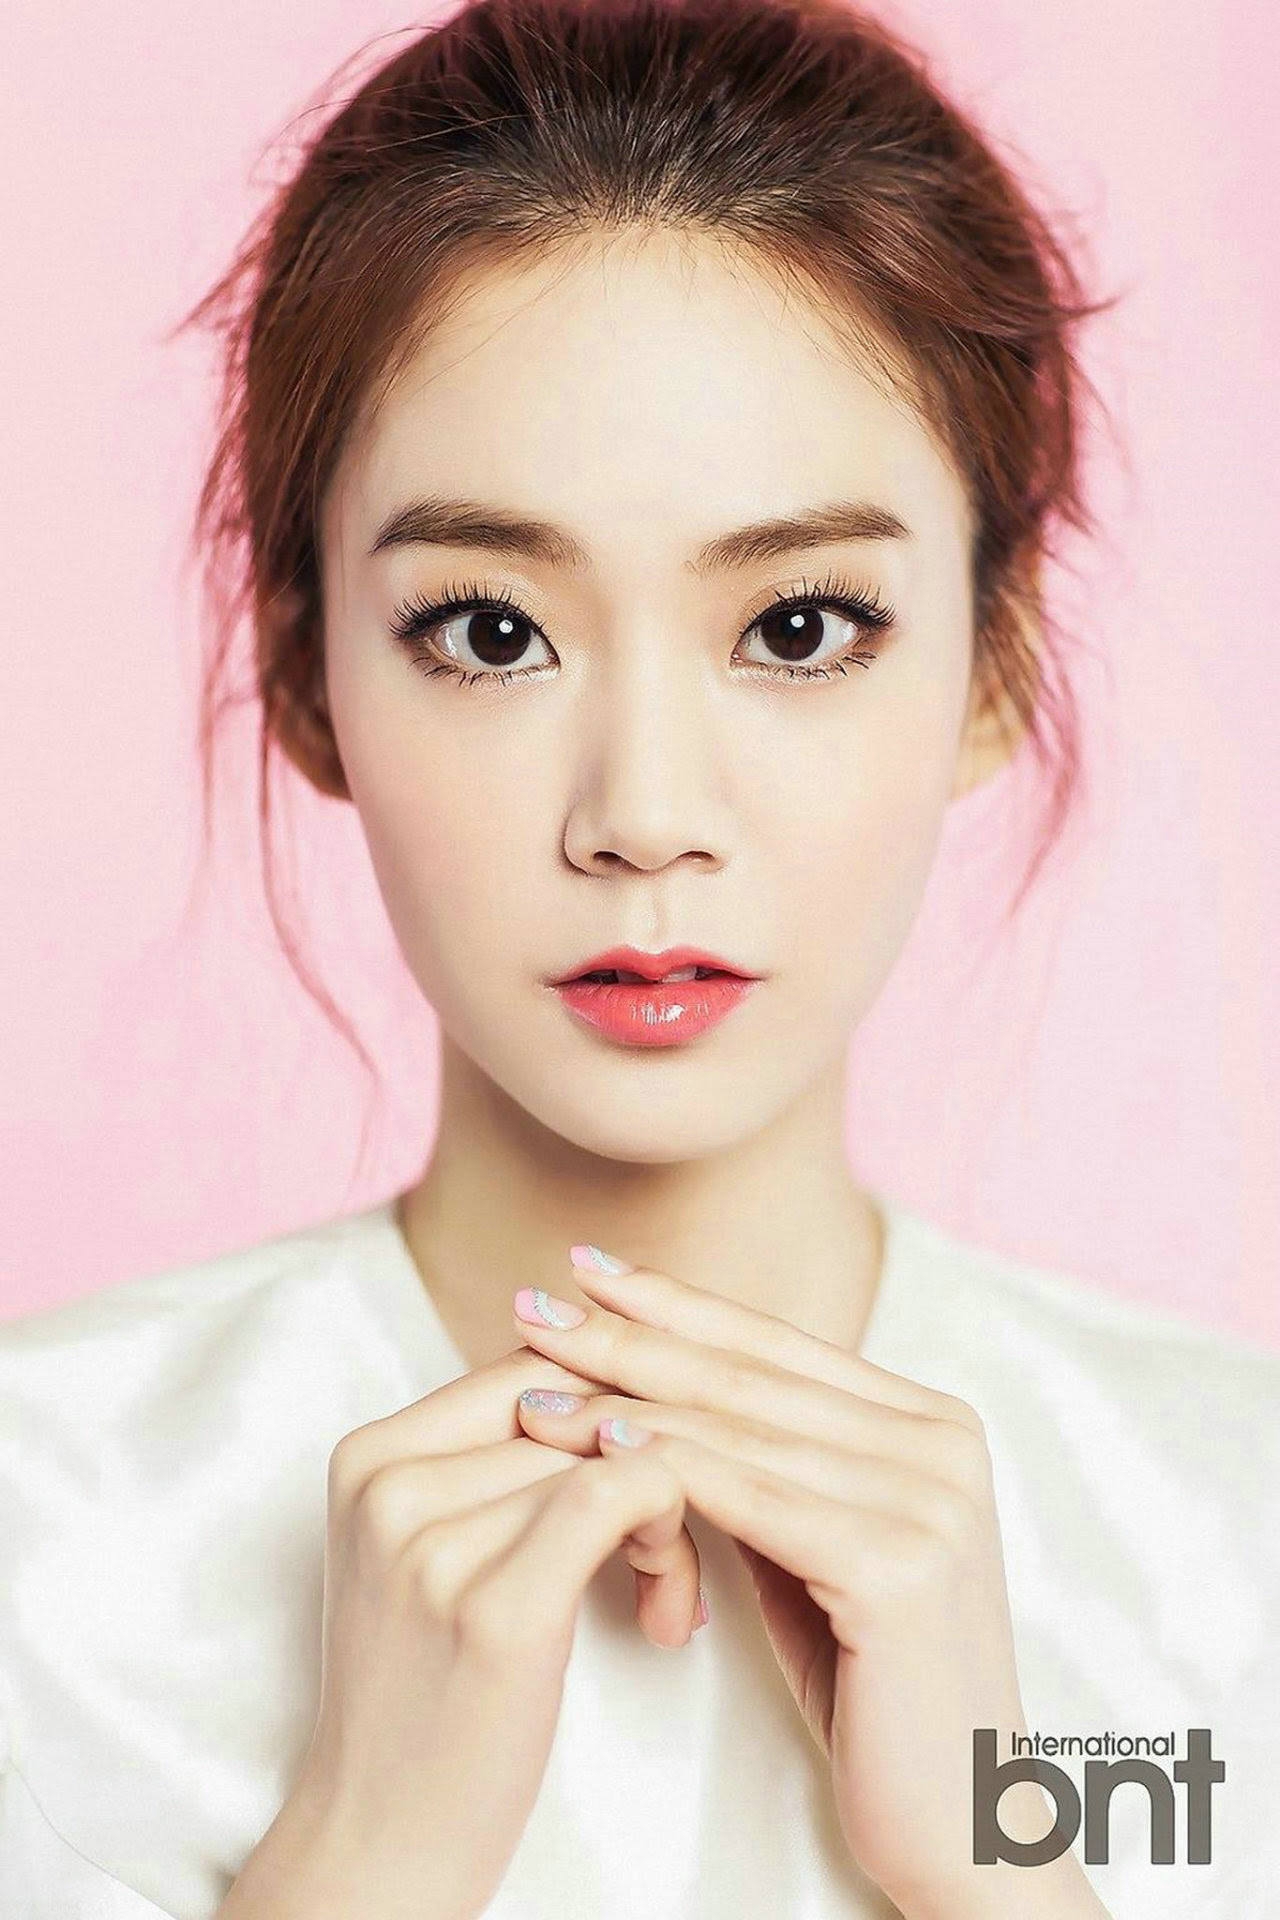 KARA Seung Yeon - bnt International May 2015